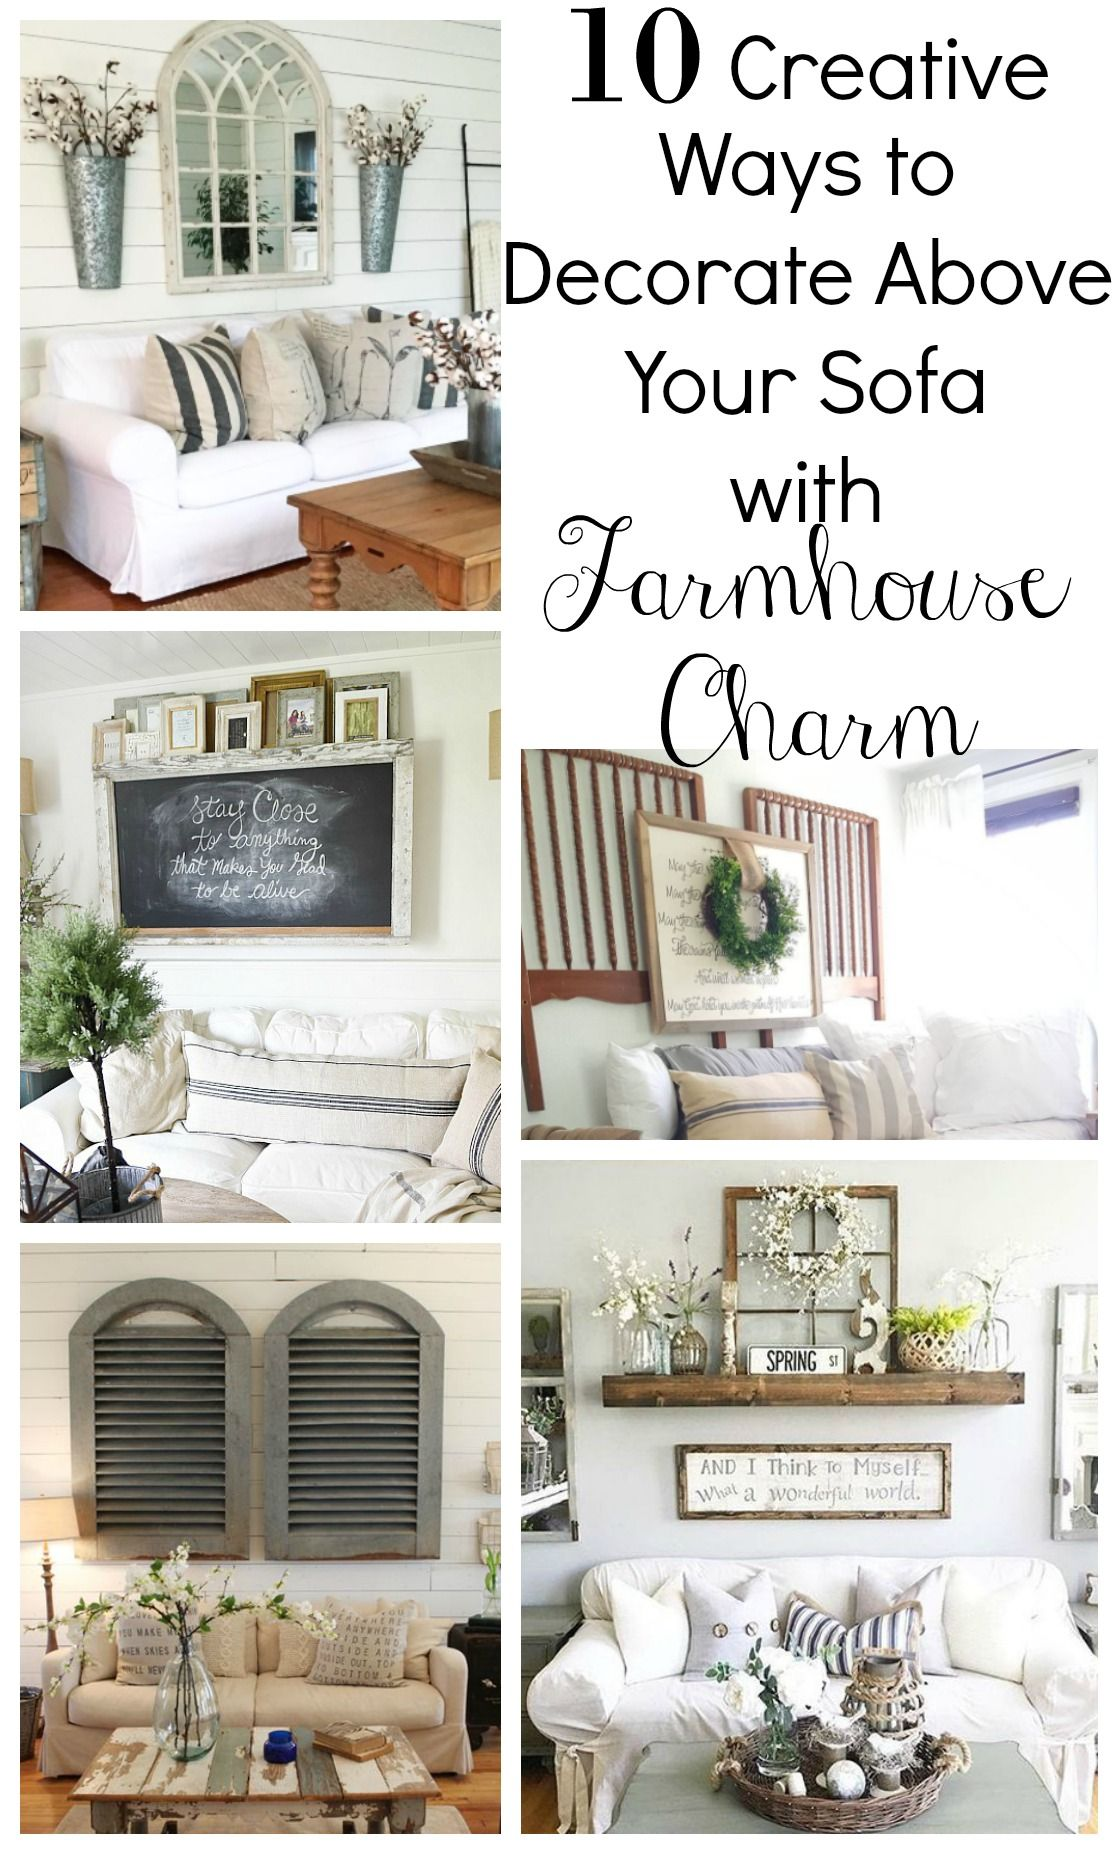 Creative Ways to Decorate Above the Sofa - Sarah Joy  Farm house